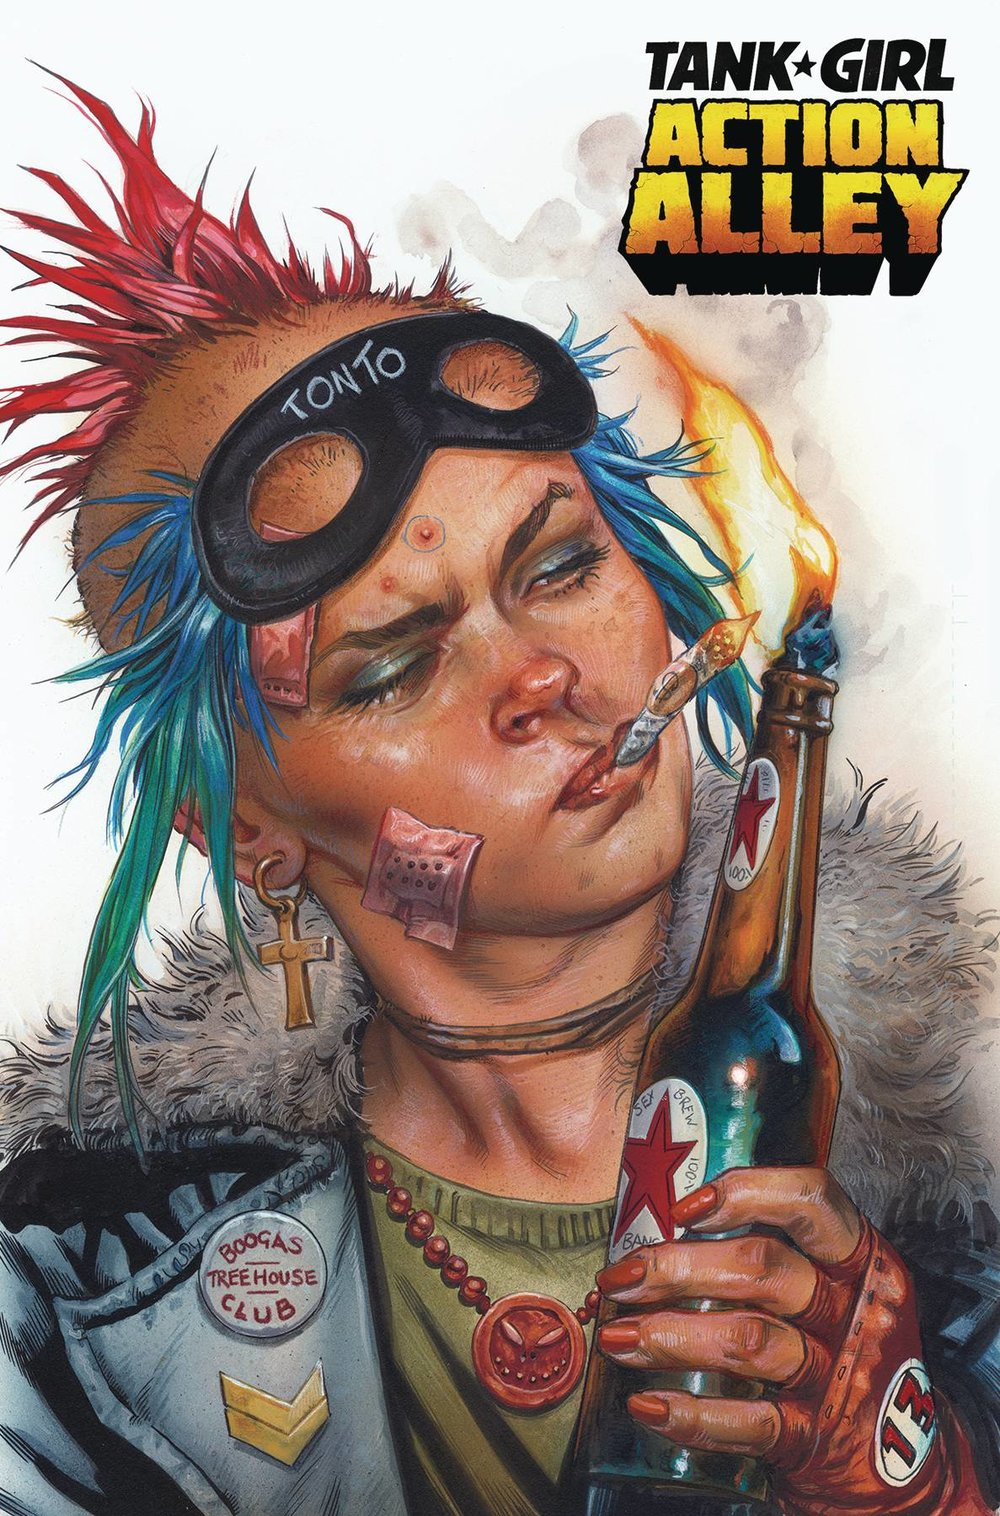 TANK GIRL ACTION ALLEY 1 CVR C STAPLES.jpg